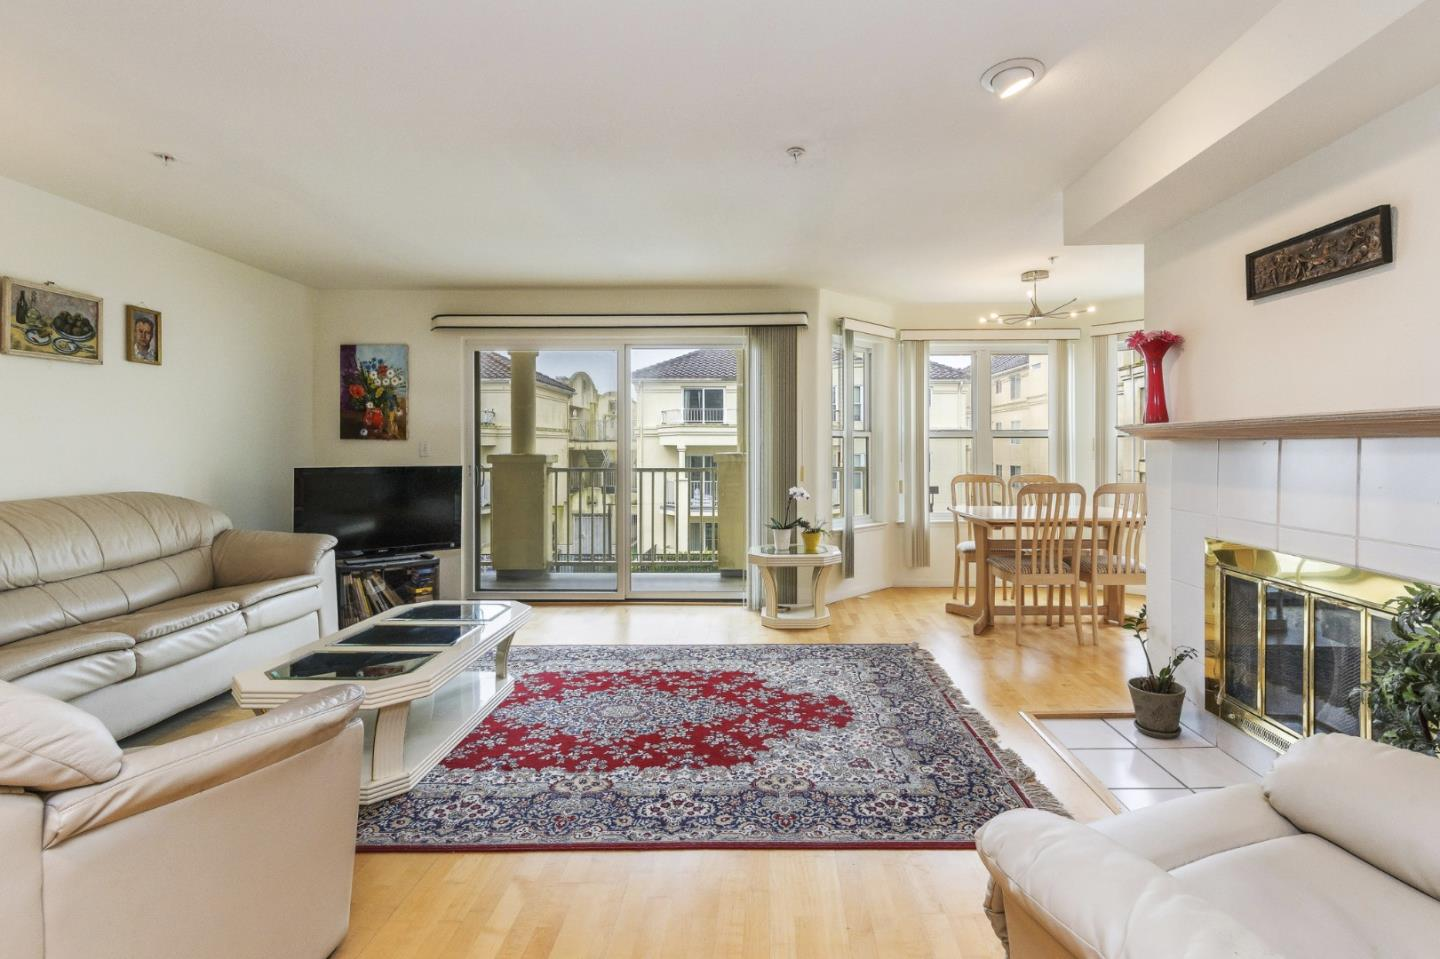 Image for 3885 Carter Drive 204, <br>South San Francisco 94080